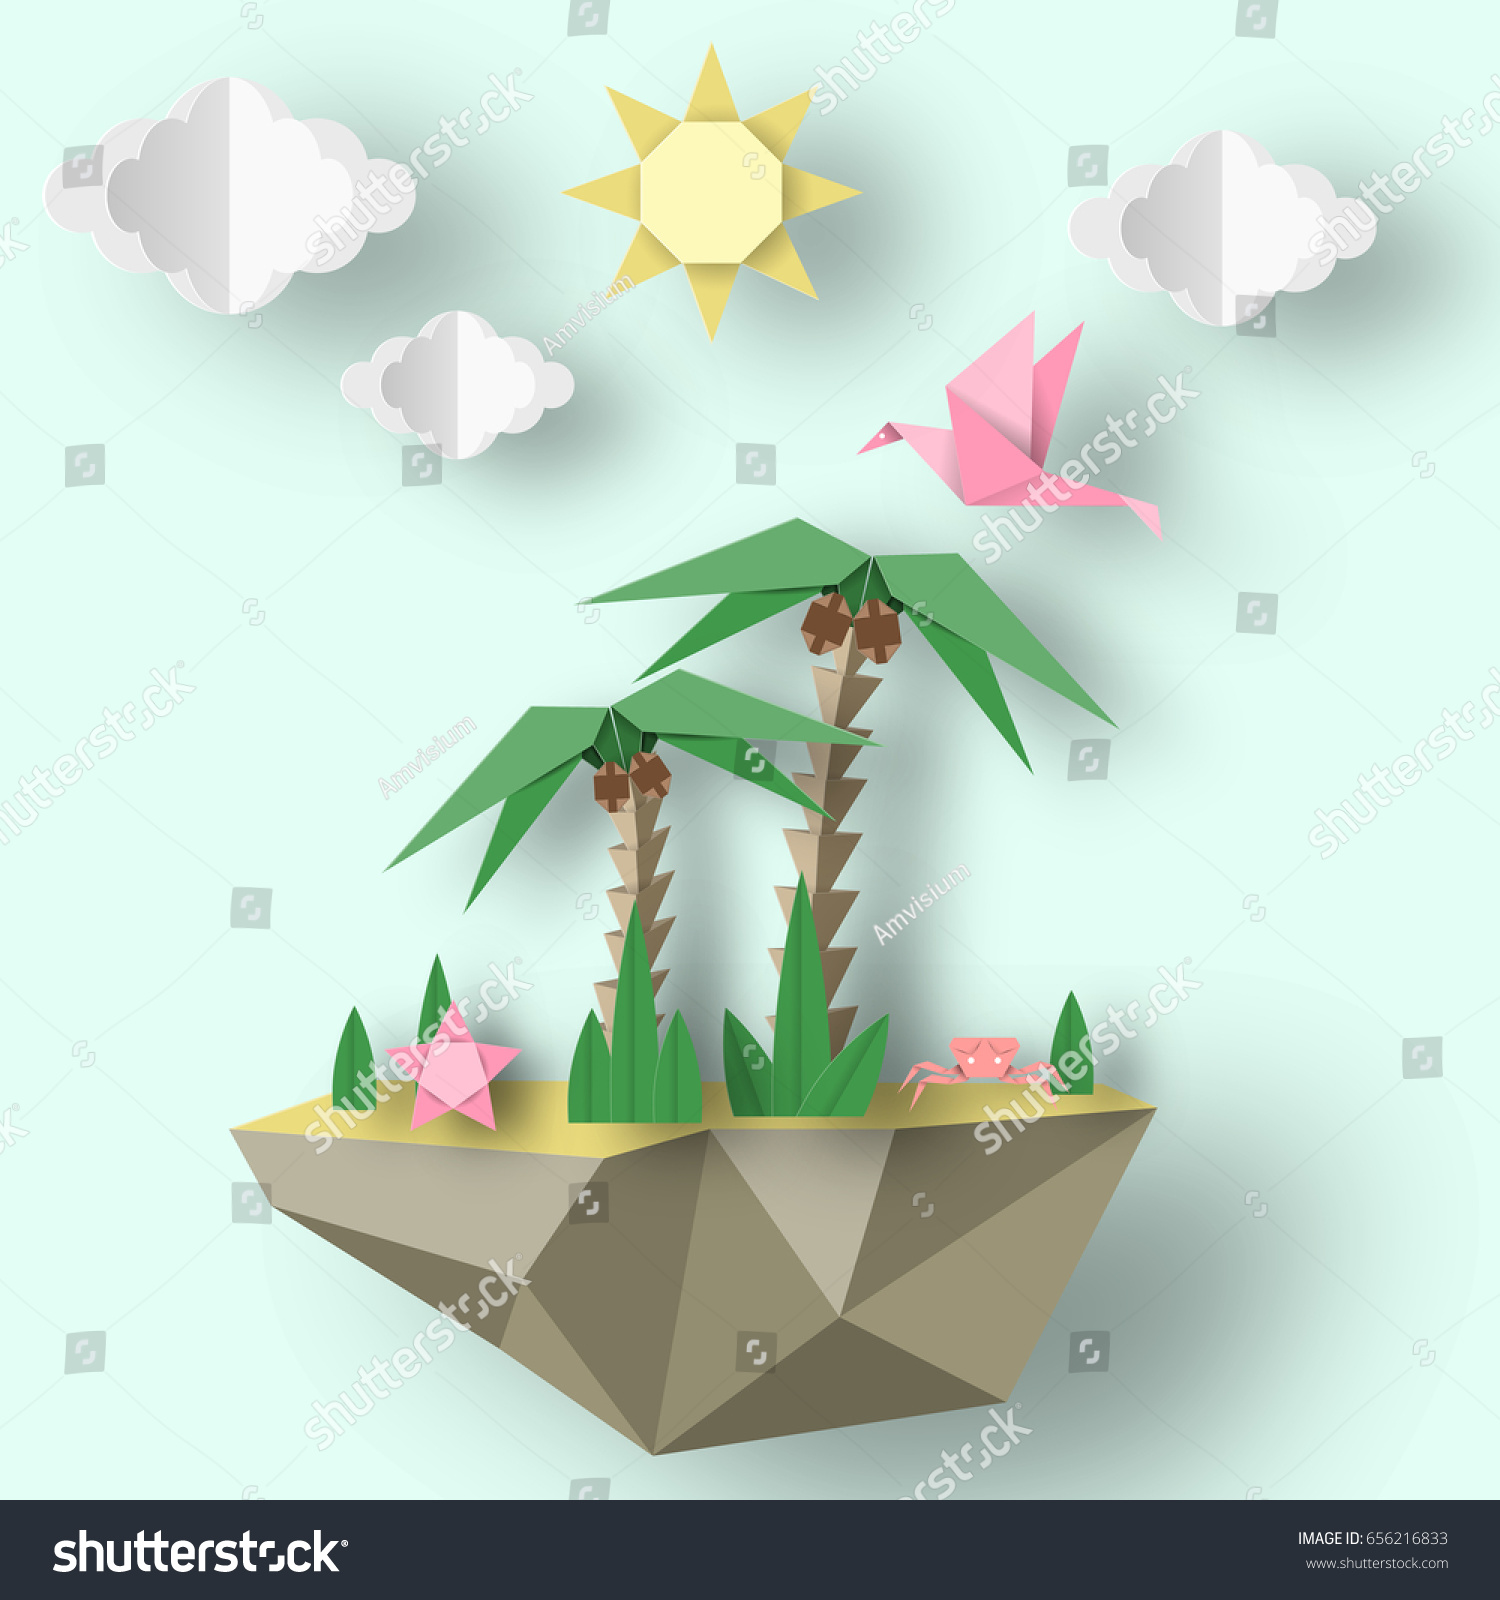 Summer origami art applique paper crafted stock vector 656216833 summer origami art applique paper crafted cutout world decoration template for banner card jeuxipadfo Images